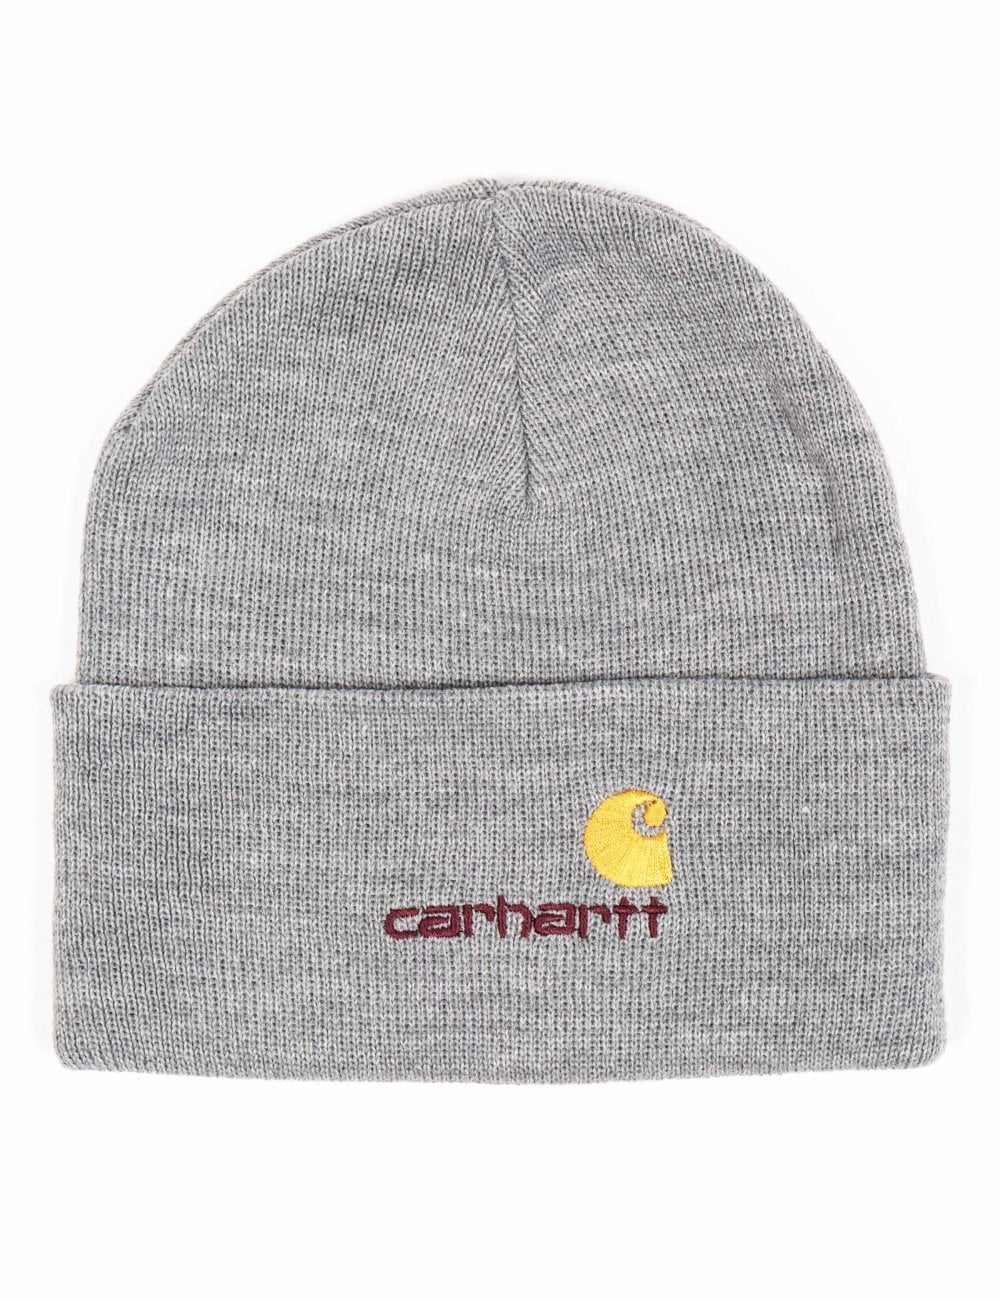 34802d75400 Carhartt WIP American Script Beanie - Grey Heather - Accessories ...